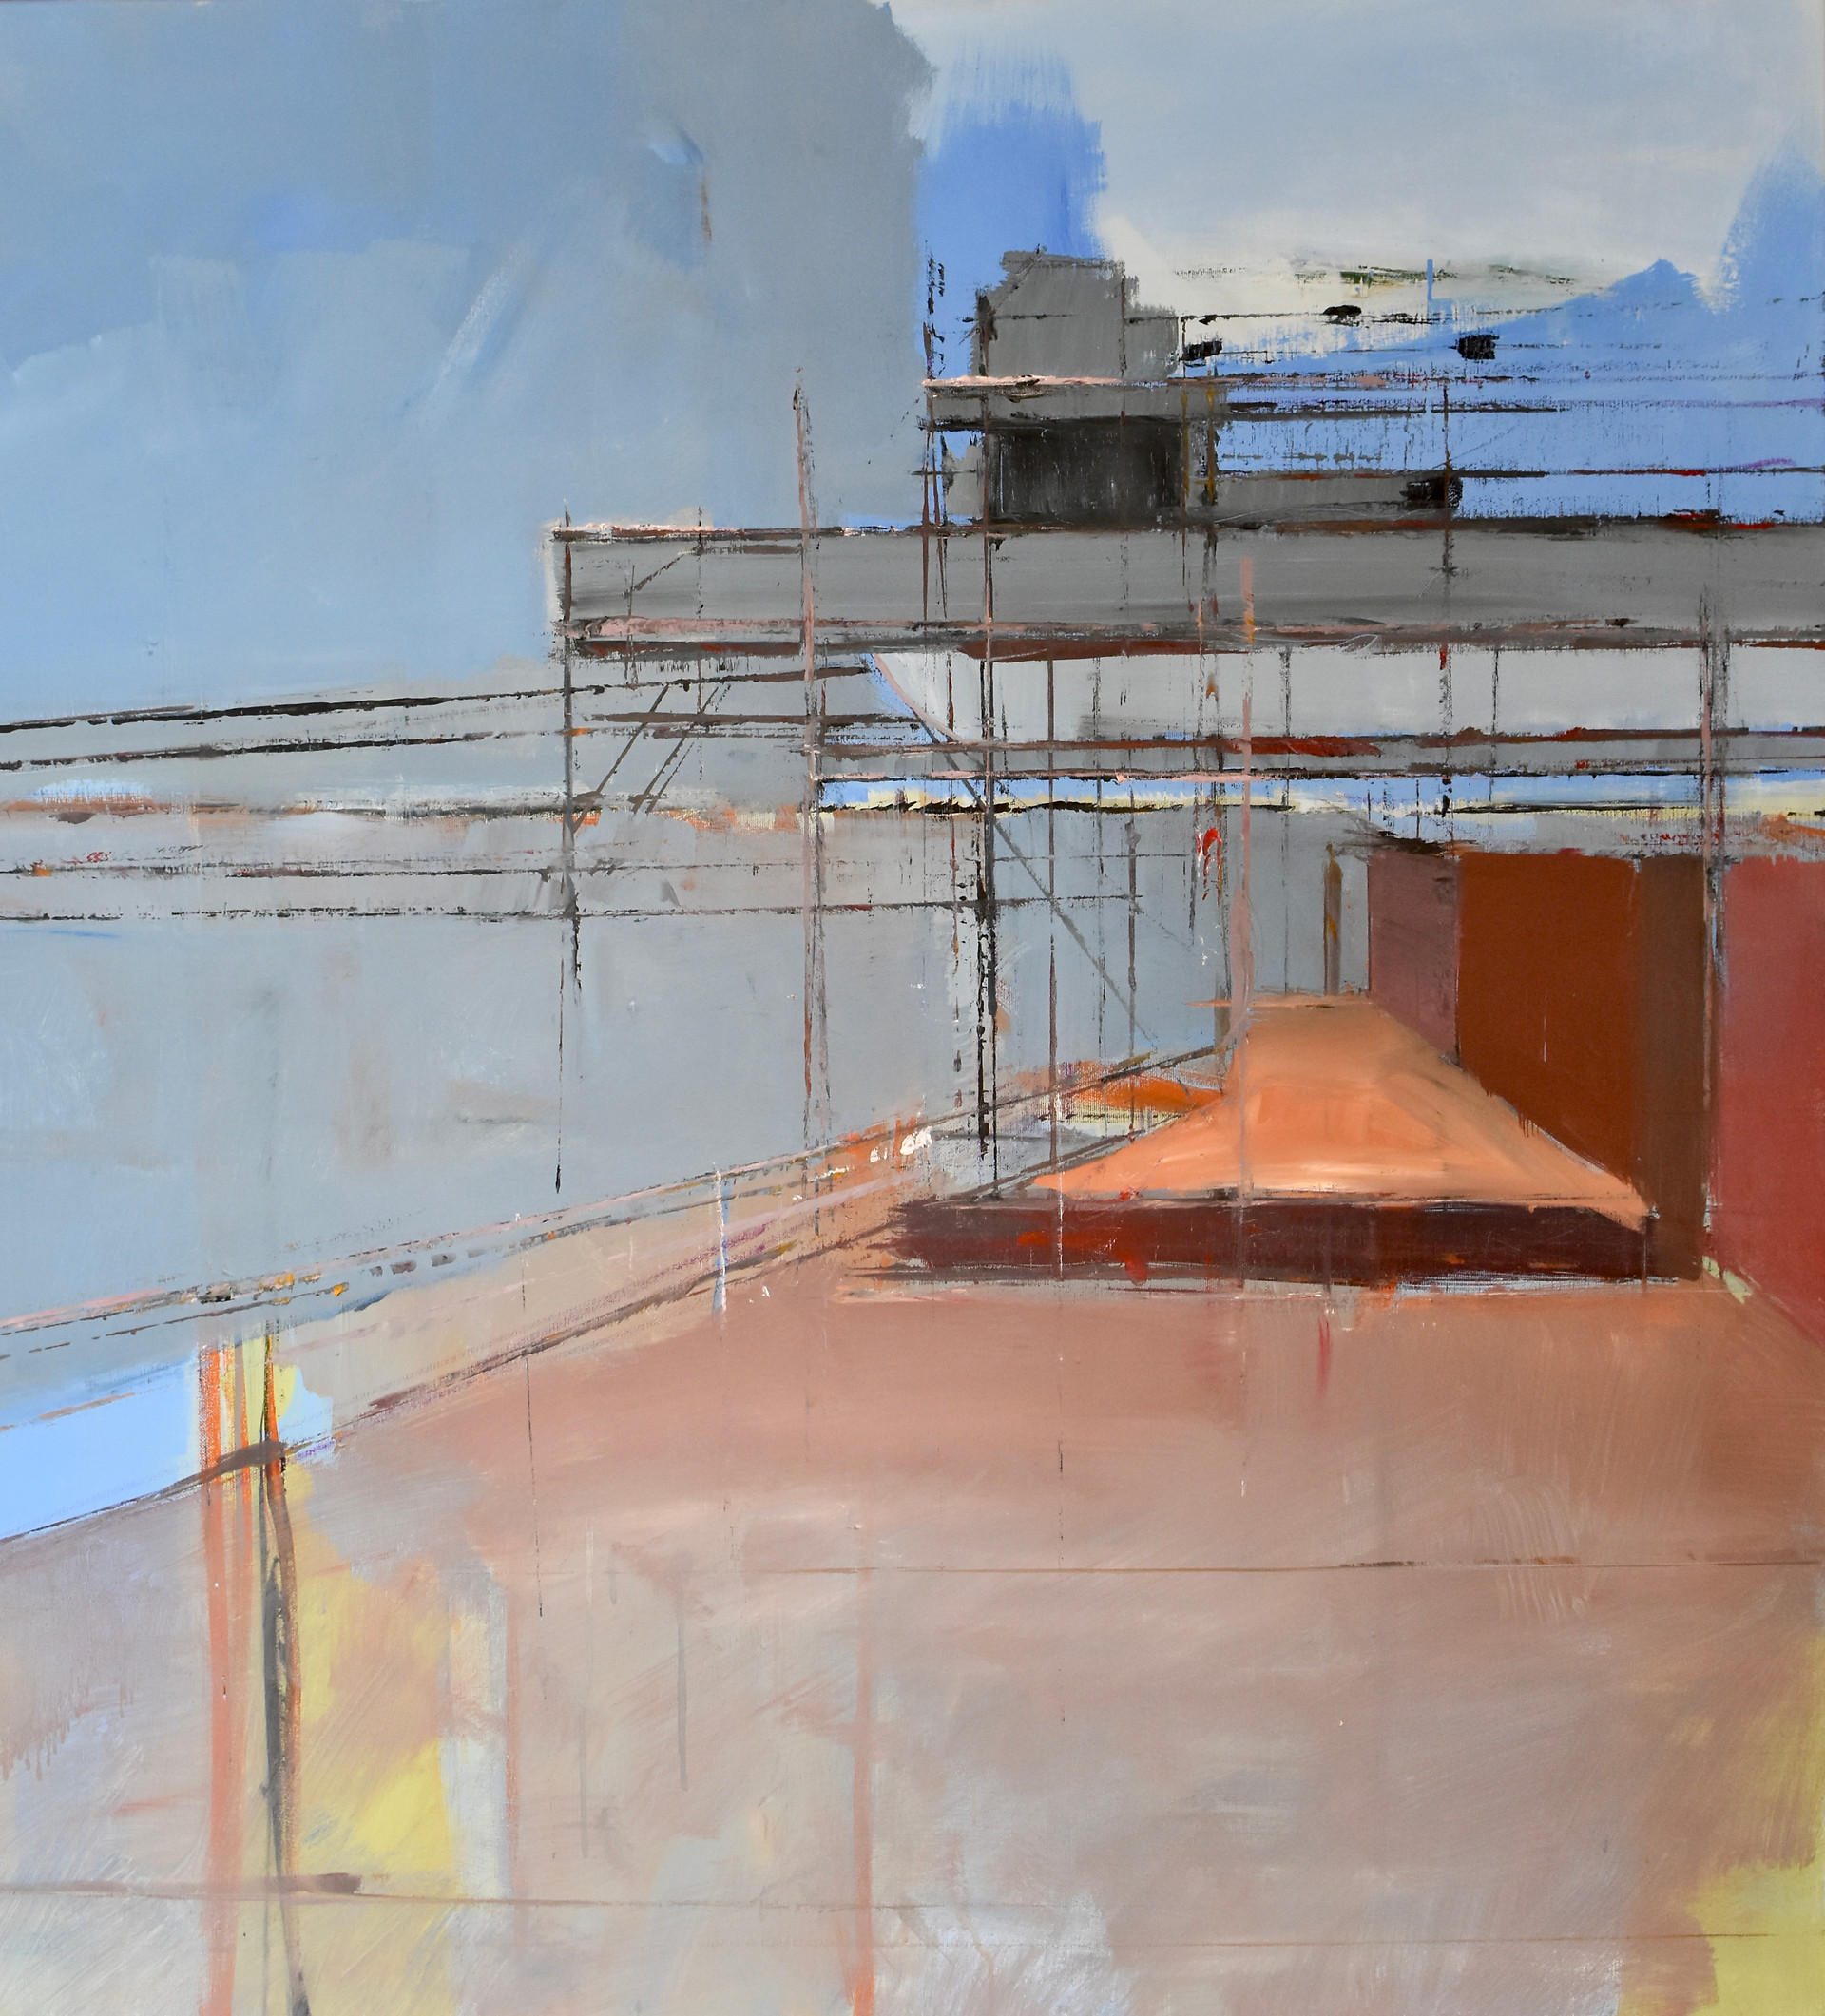 Cement Works Structure | Oil on canvas